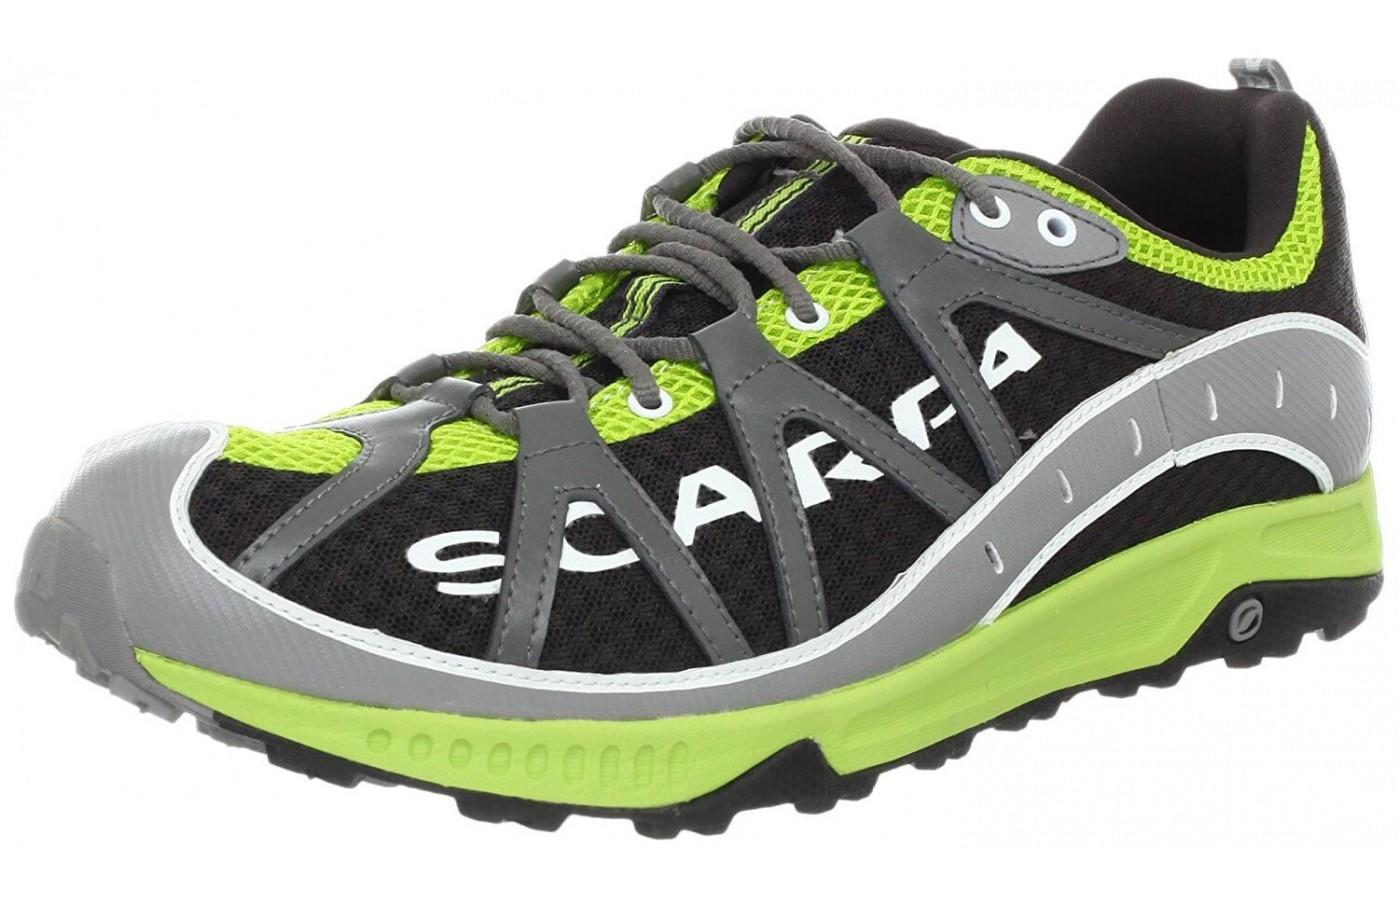 the Scarpa Spark is a tenacious trail runner